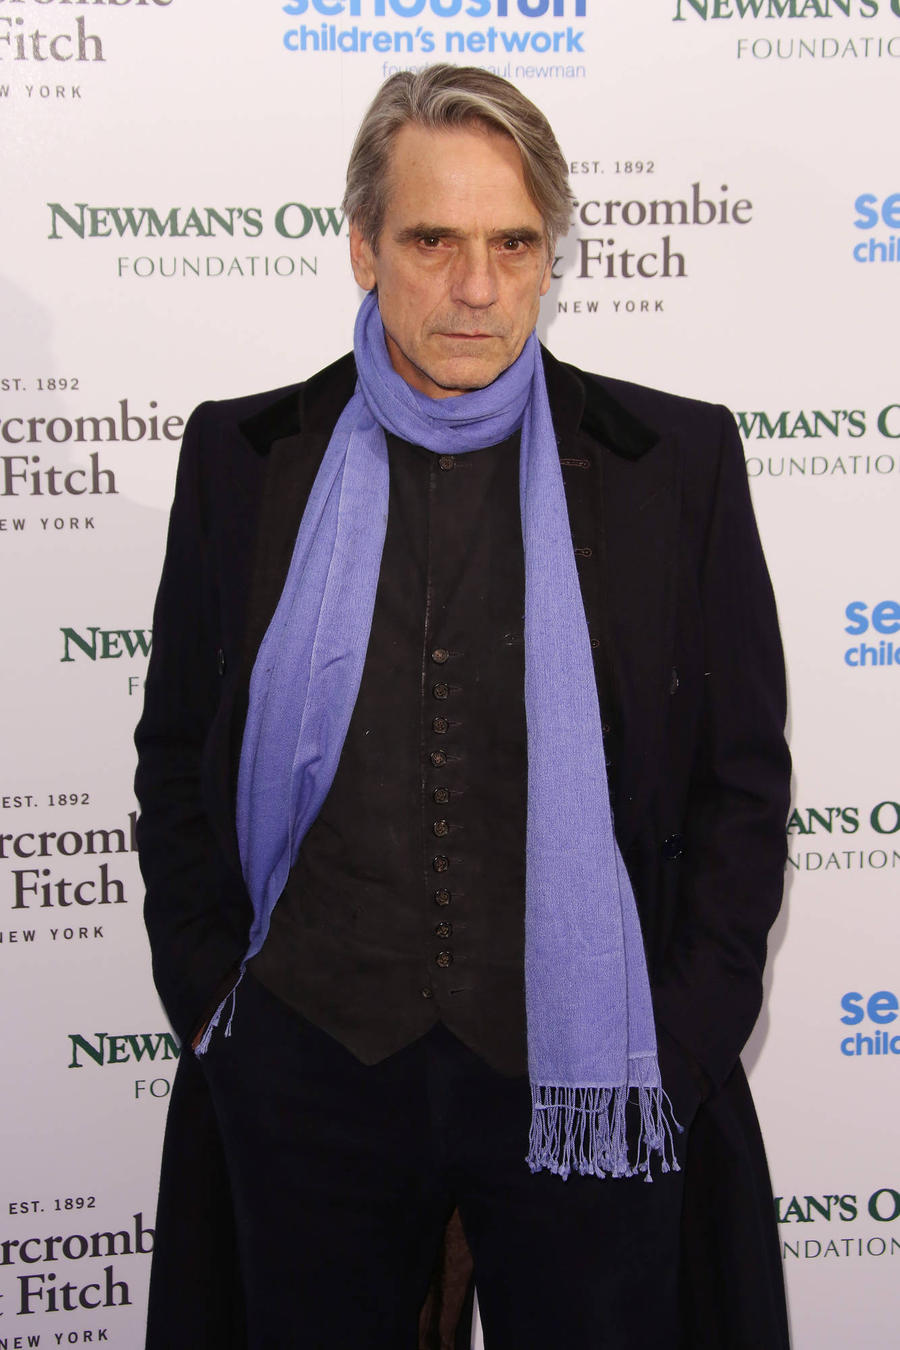 Jeremy Irons Doesn't Want Knighthood